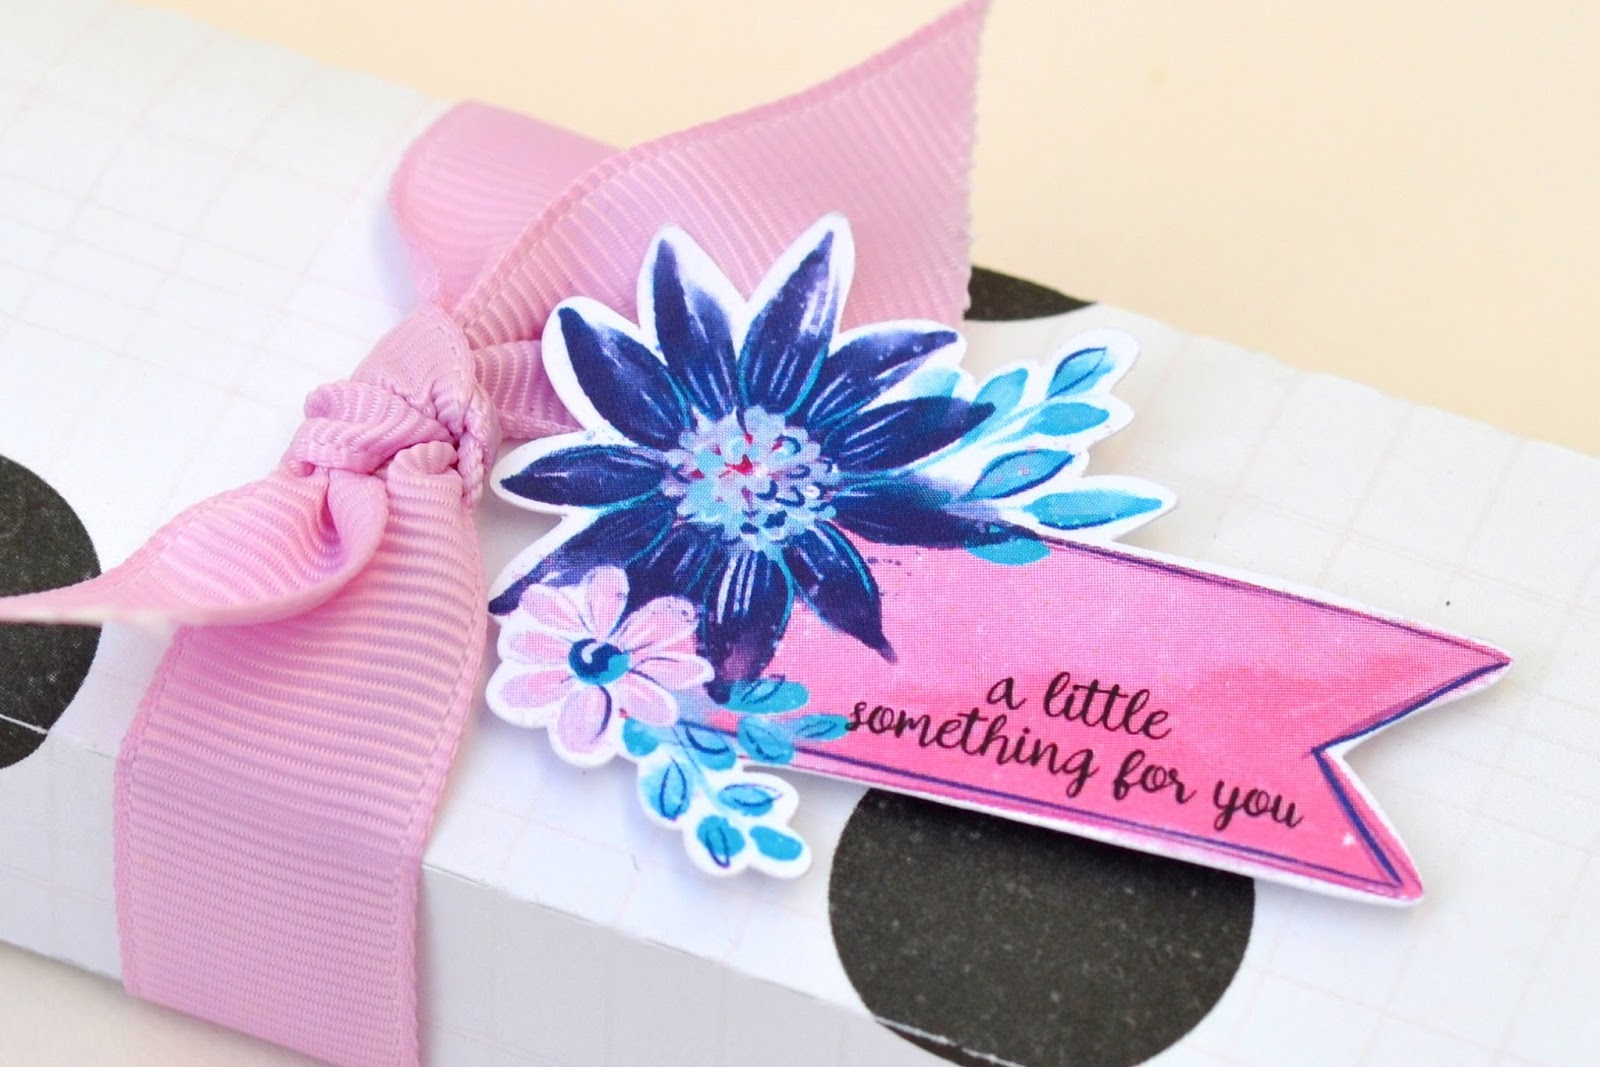 Silhouette UK: Welcome Gifts - adding text to Print and Cut Files